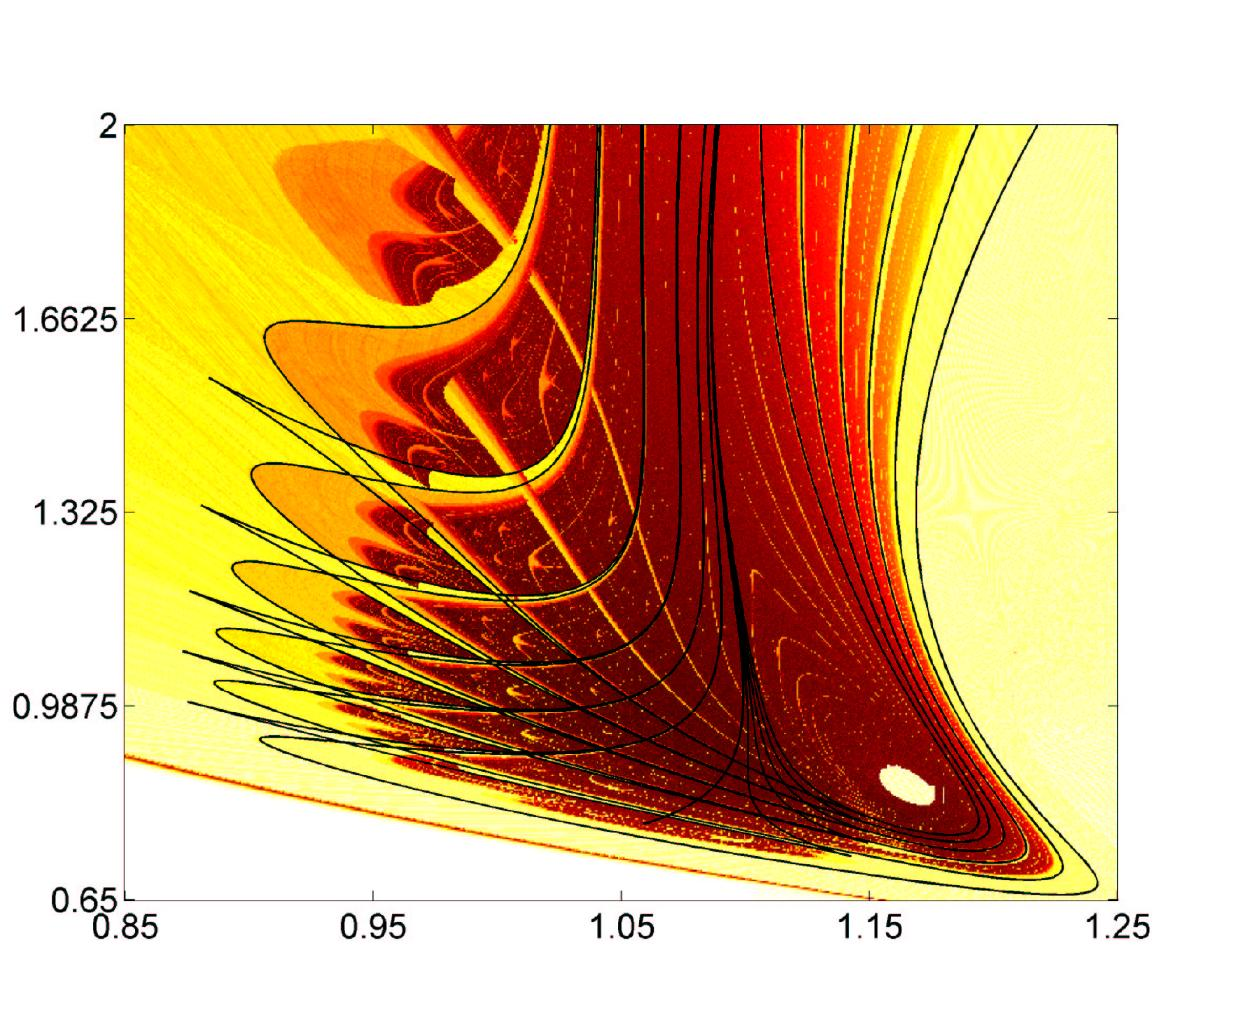 Mri master class numerical bifurcation analysis of dynamical systems bifurcation diagram of a food cahin pooptronica